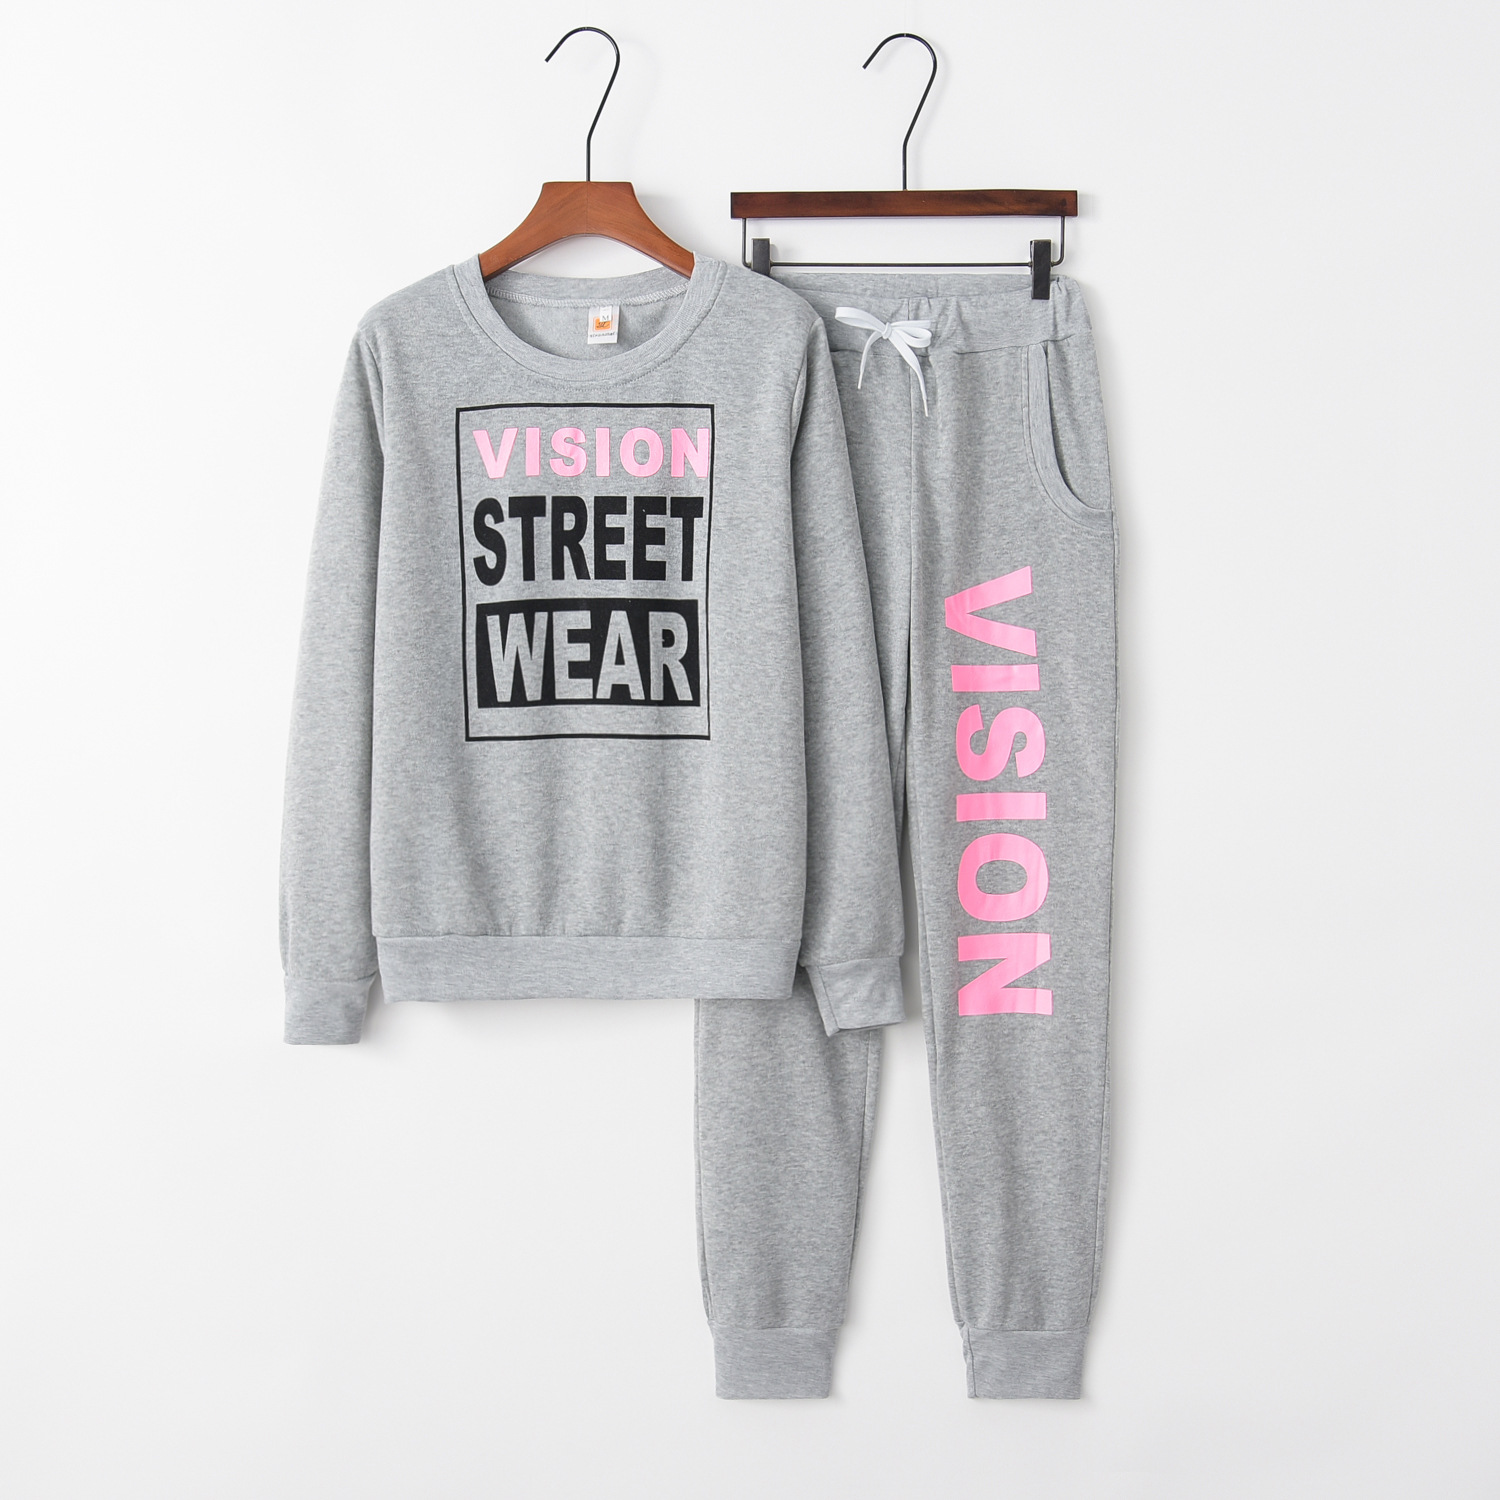 Letter Street 2020 New Design Fashion Hot Sale Suit Set Women Tracksuit Two-piece Style Outfit Sweatshirt Sport Wear